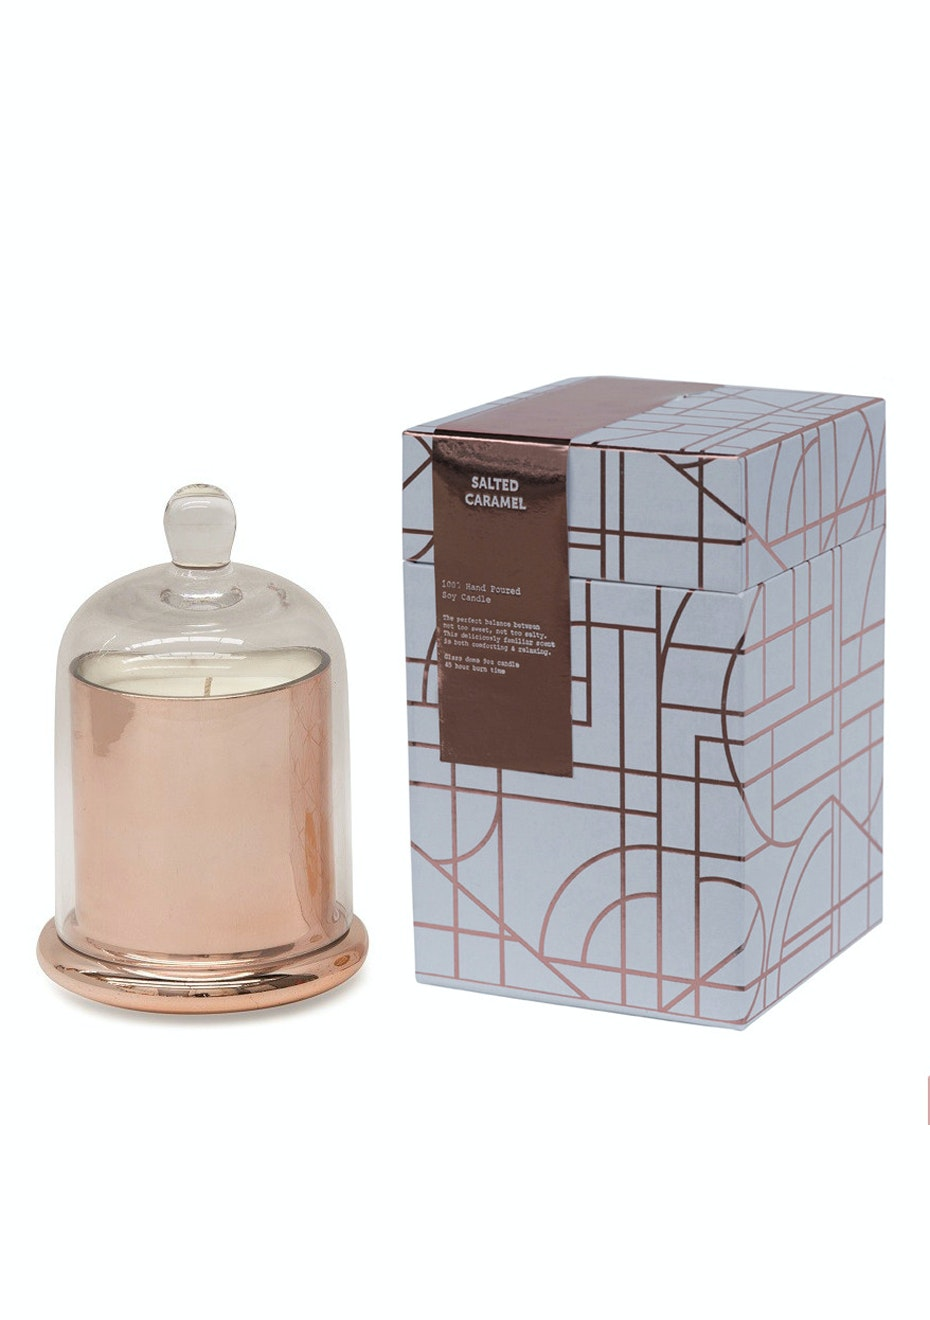 Me & My Trend - Dome Candle Salted Caramel